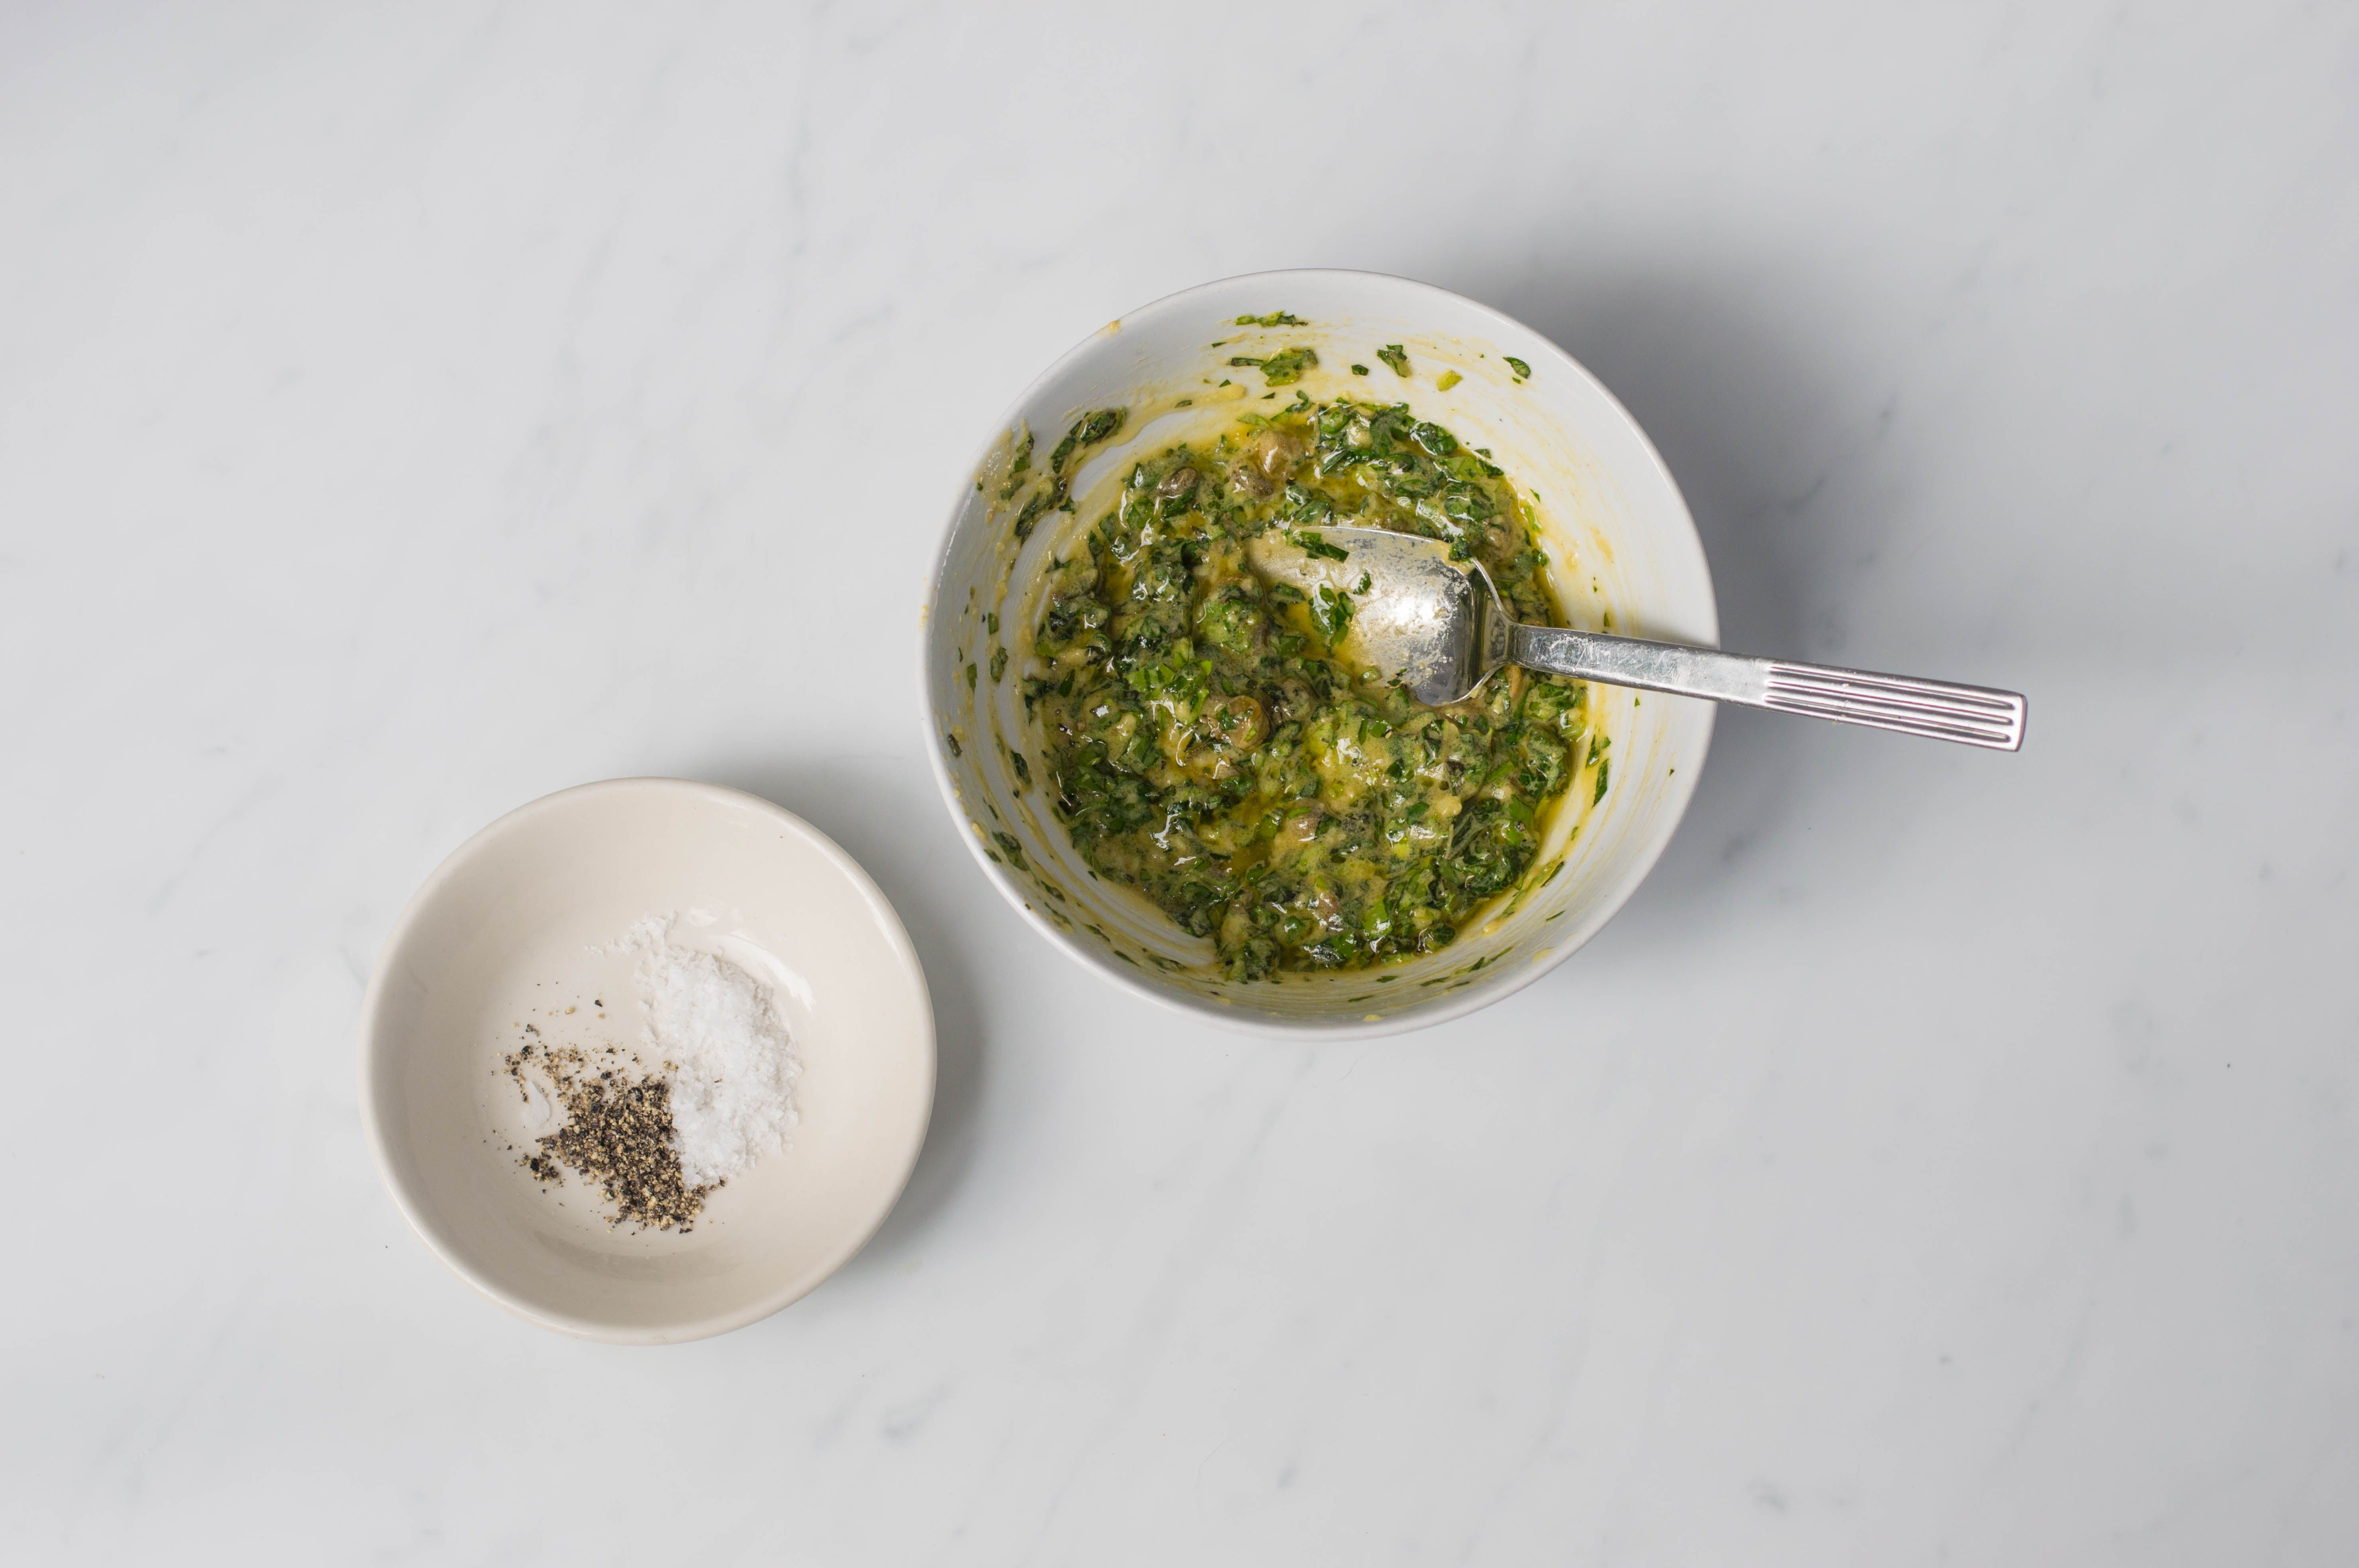 Salt and pepper to add to the salsa verde